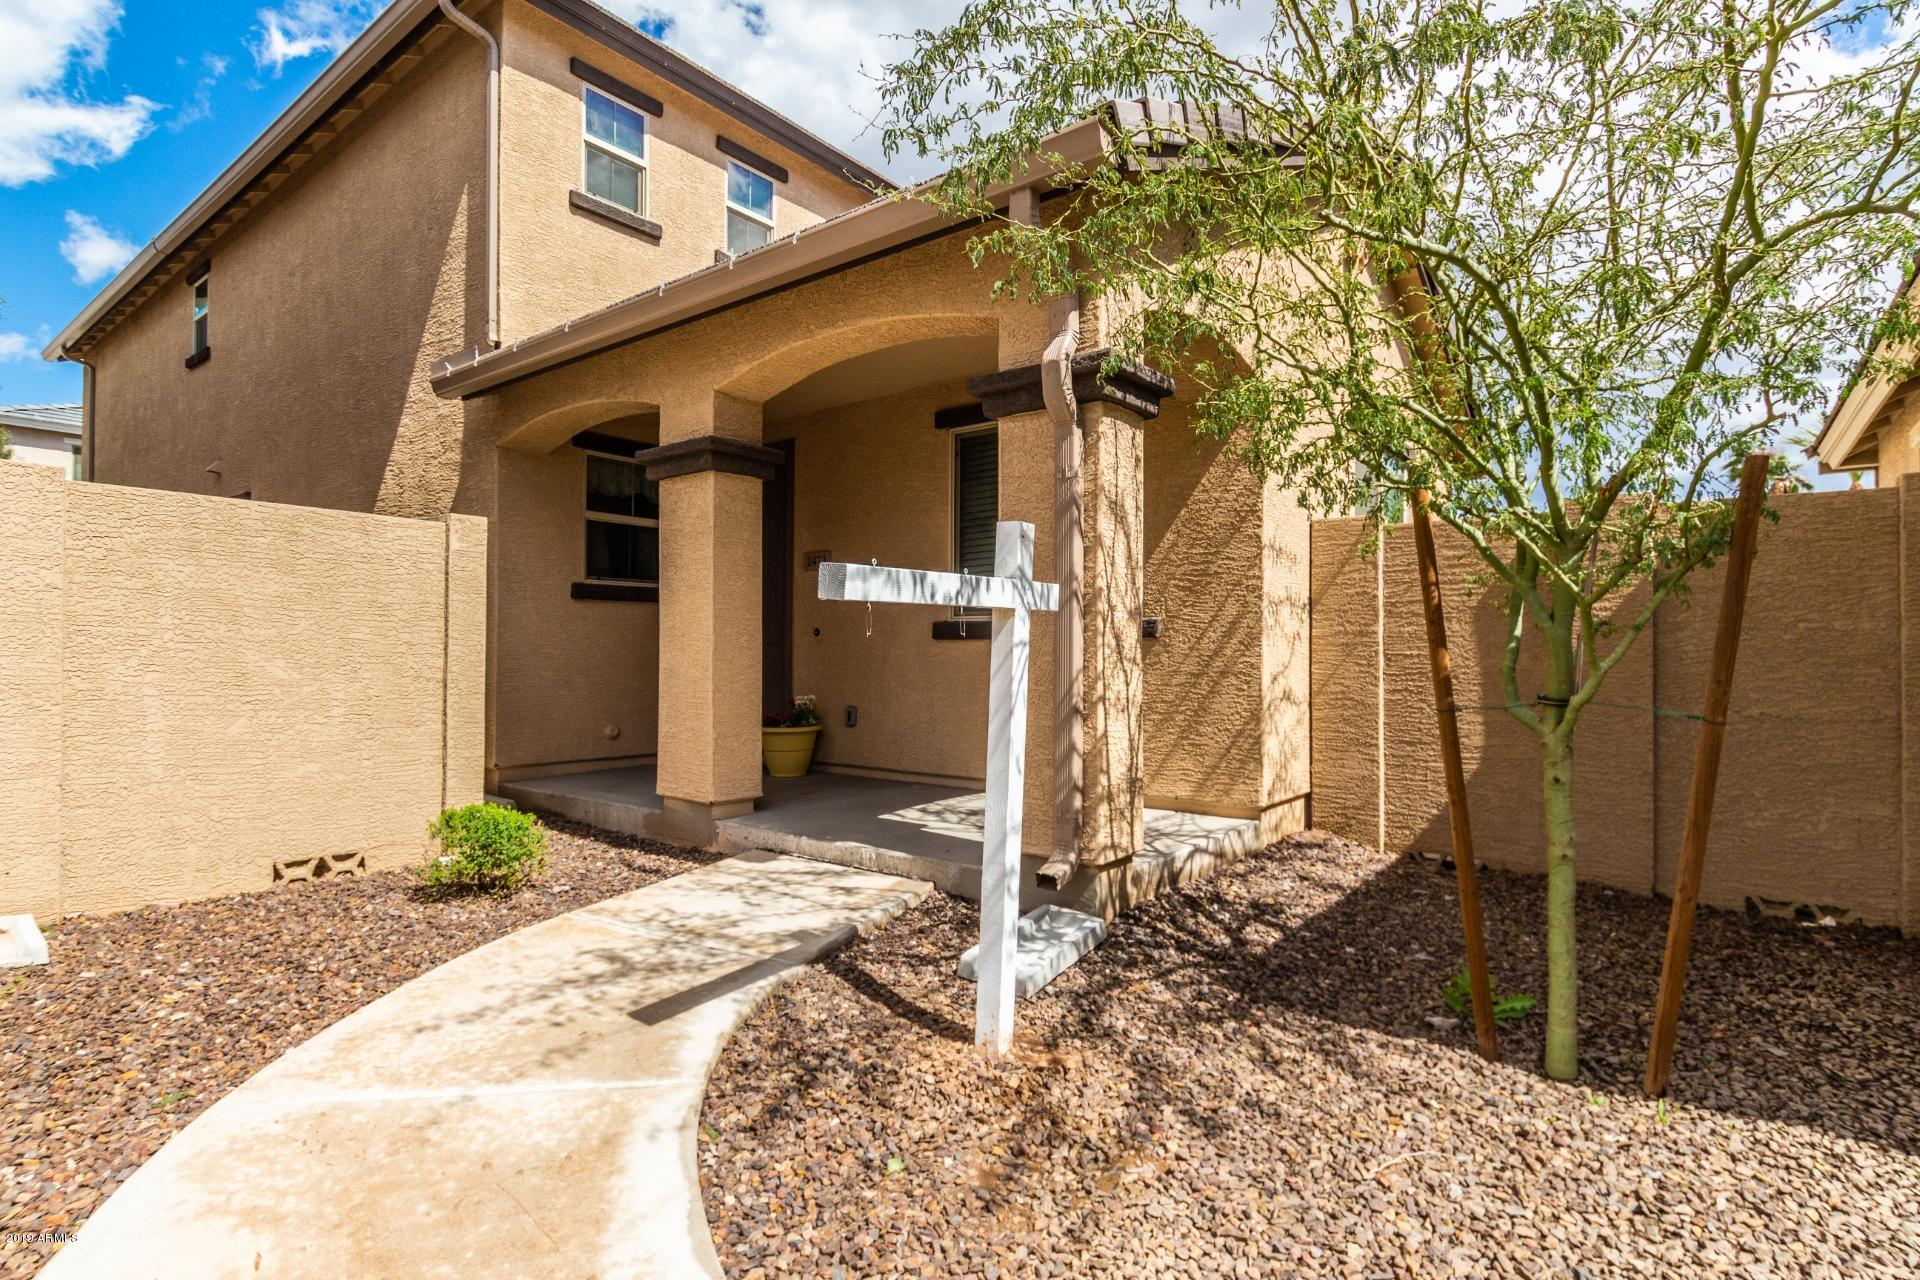 Photo for 2473 N 73rd Drive, Phoenix, AZ 85035 (MLS # 5896687)